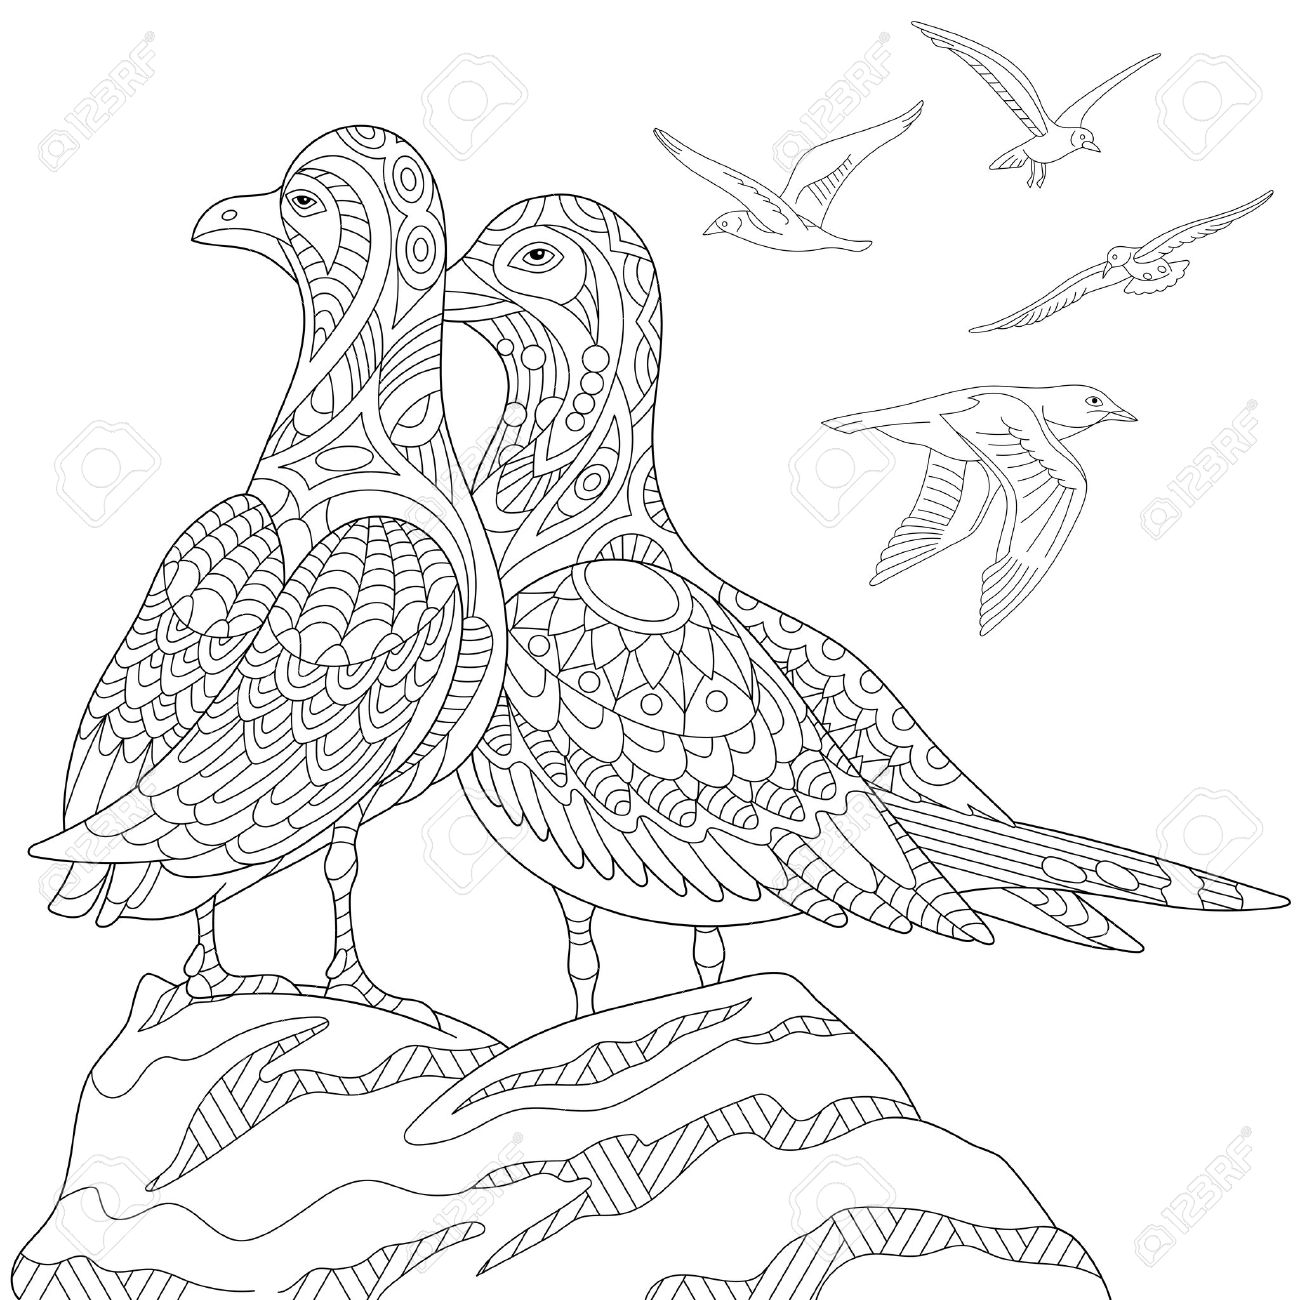 Stylized Seagulls Flock Of Marine Birds Freehand Sketch For Adult Anti Stress Coloring Book